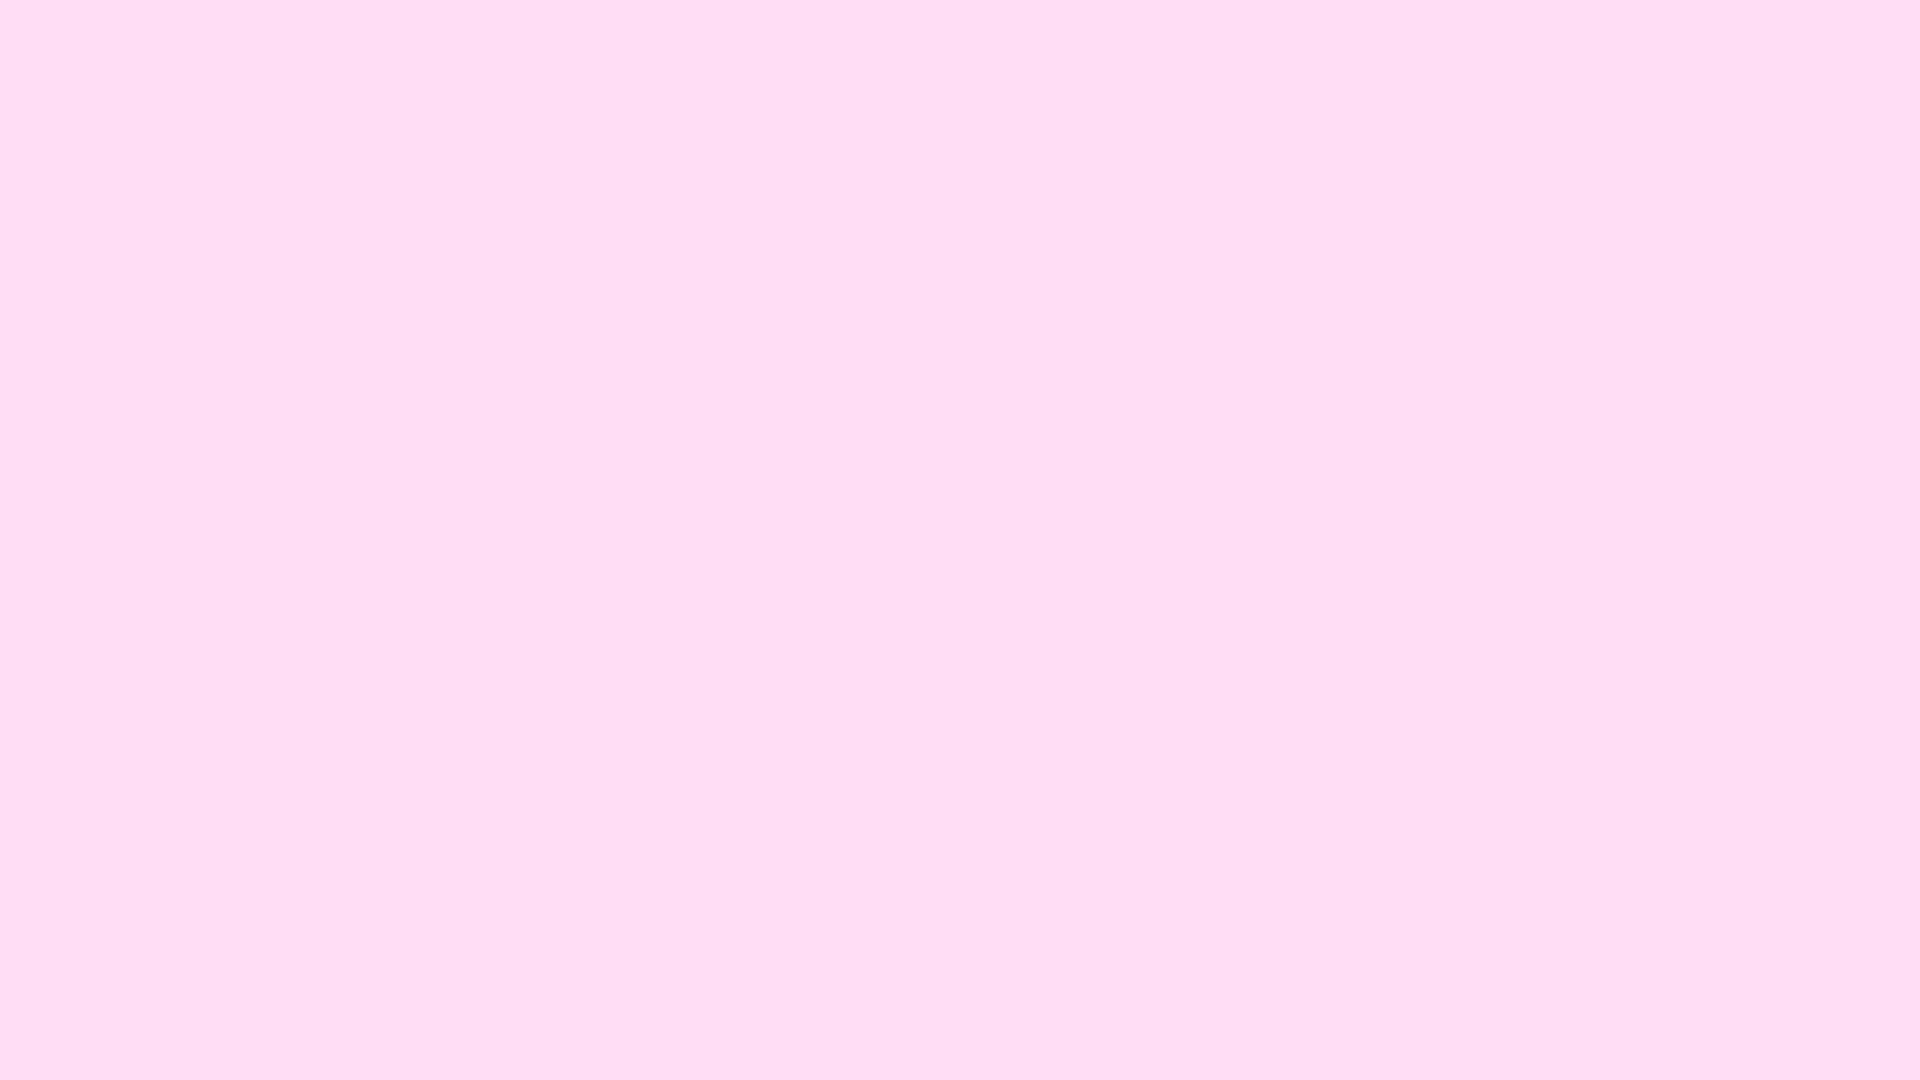 1920x1080 Pink Lace Solid Color Background